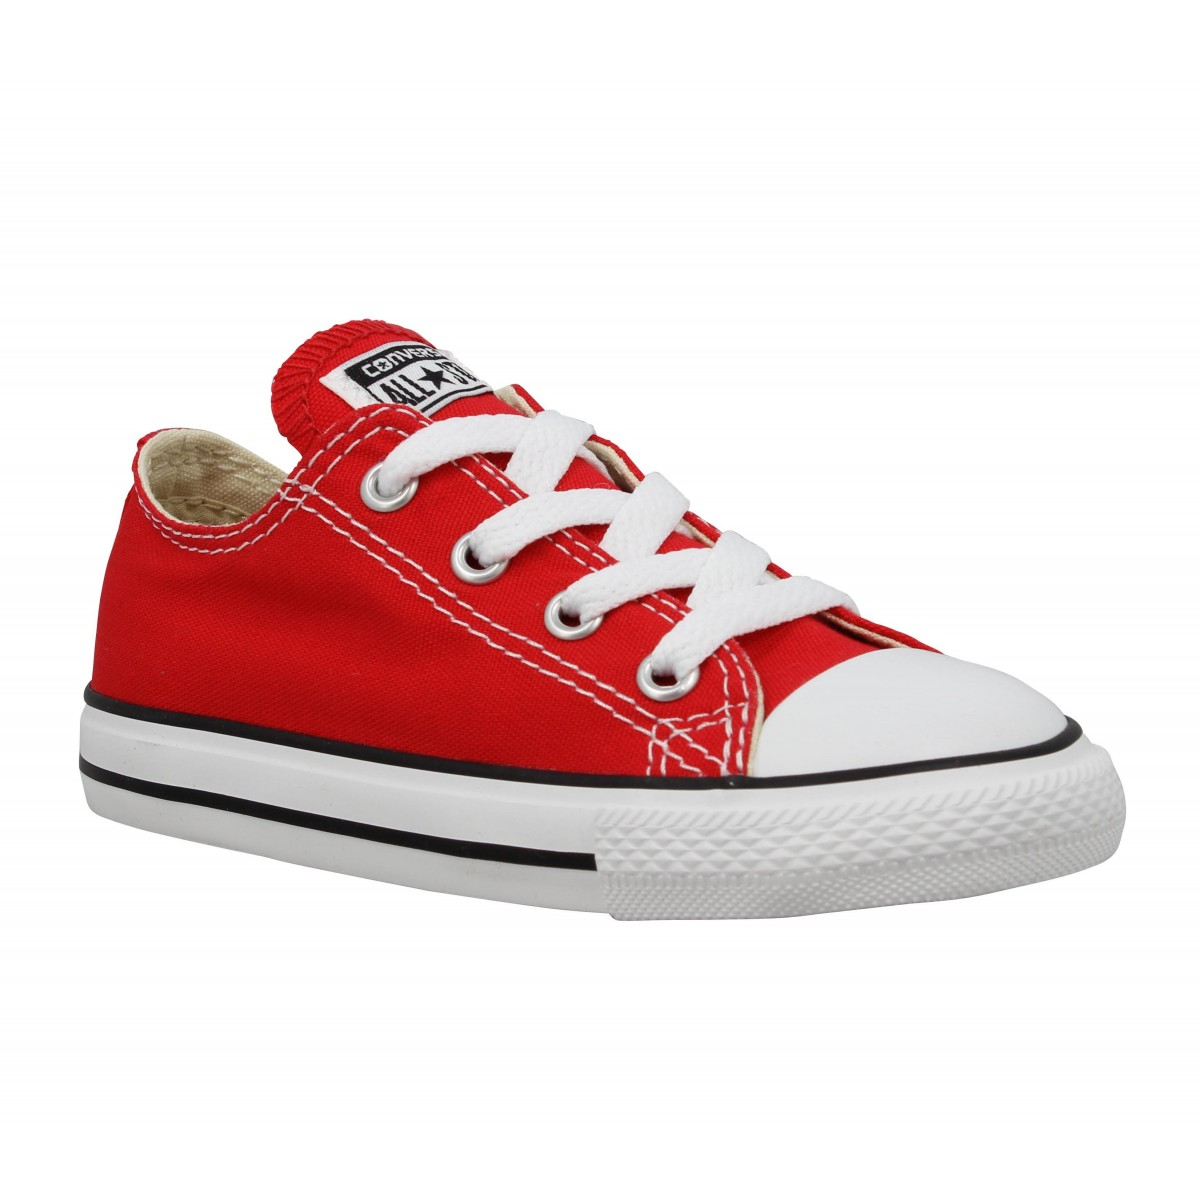 CONVERSE Chuck Taylor All Star toile Enfant Rouge